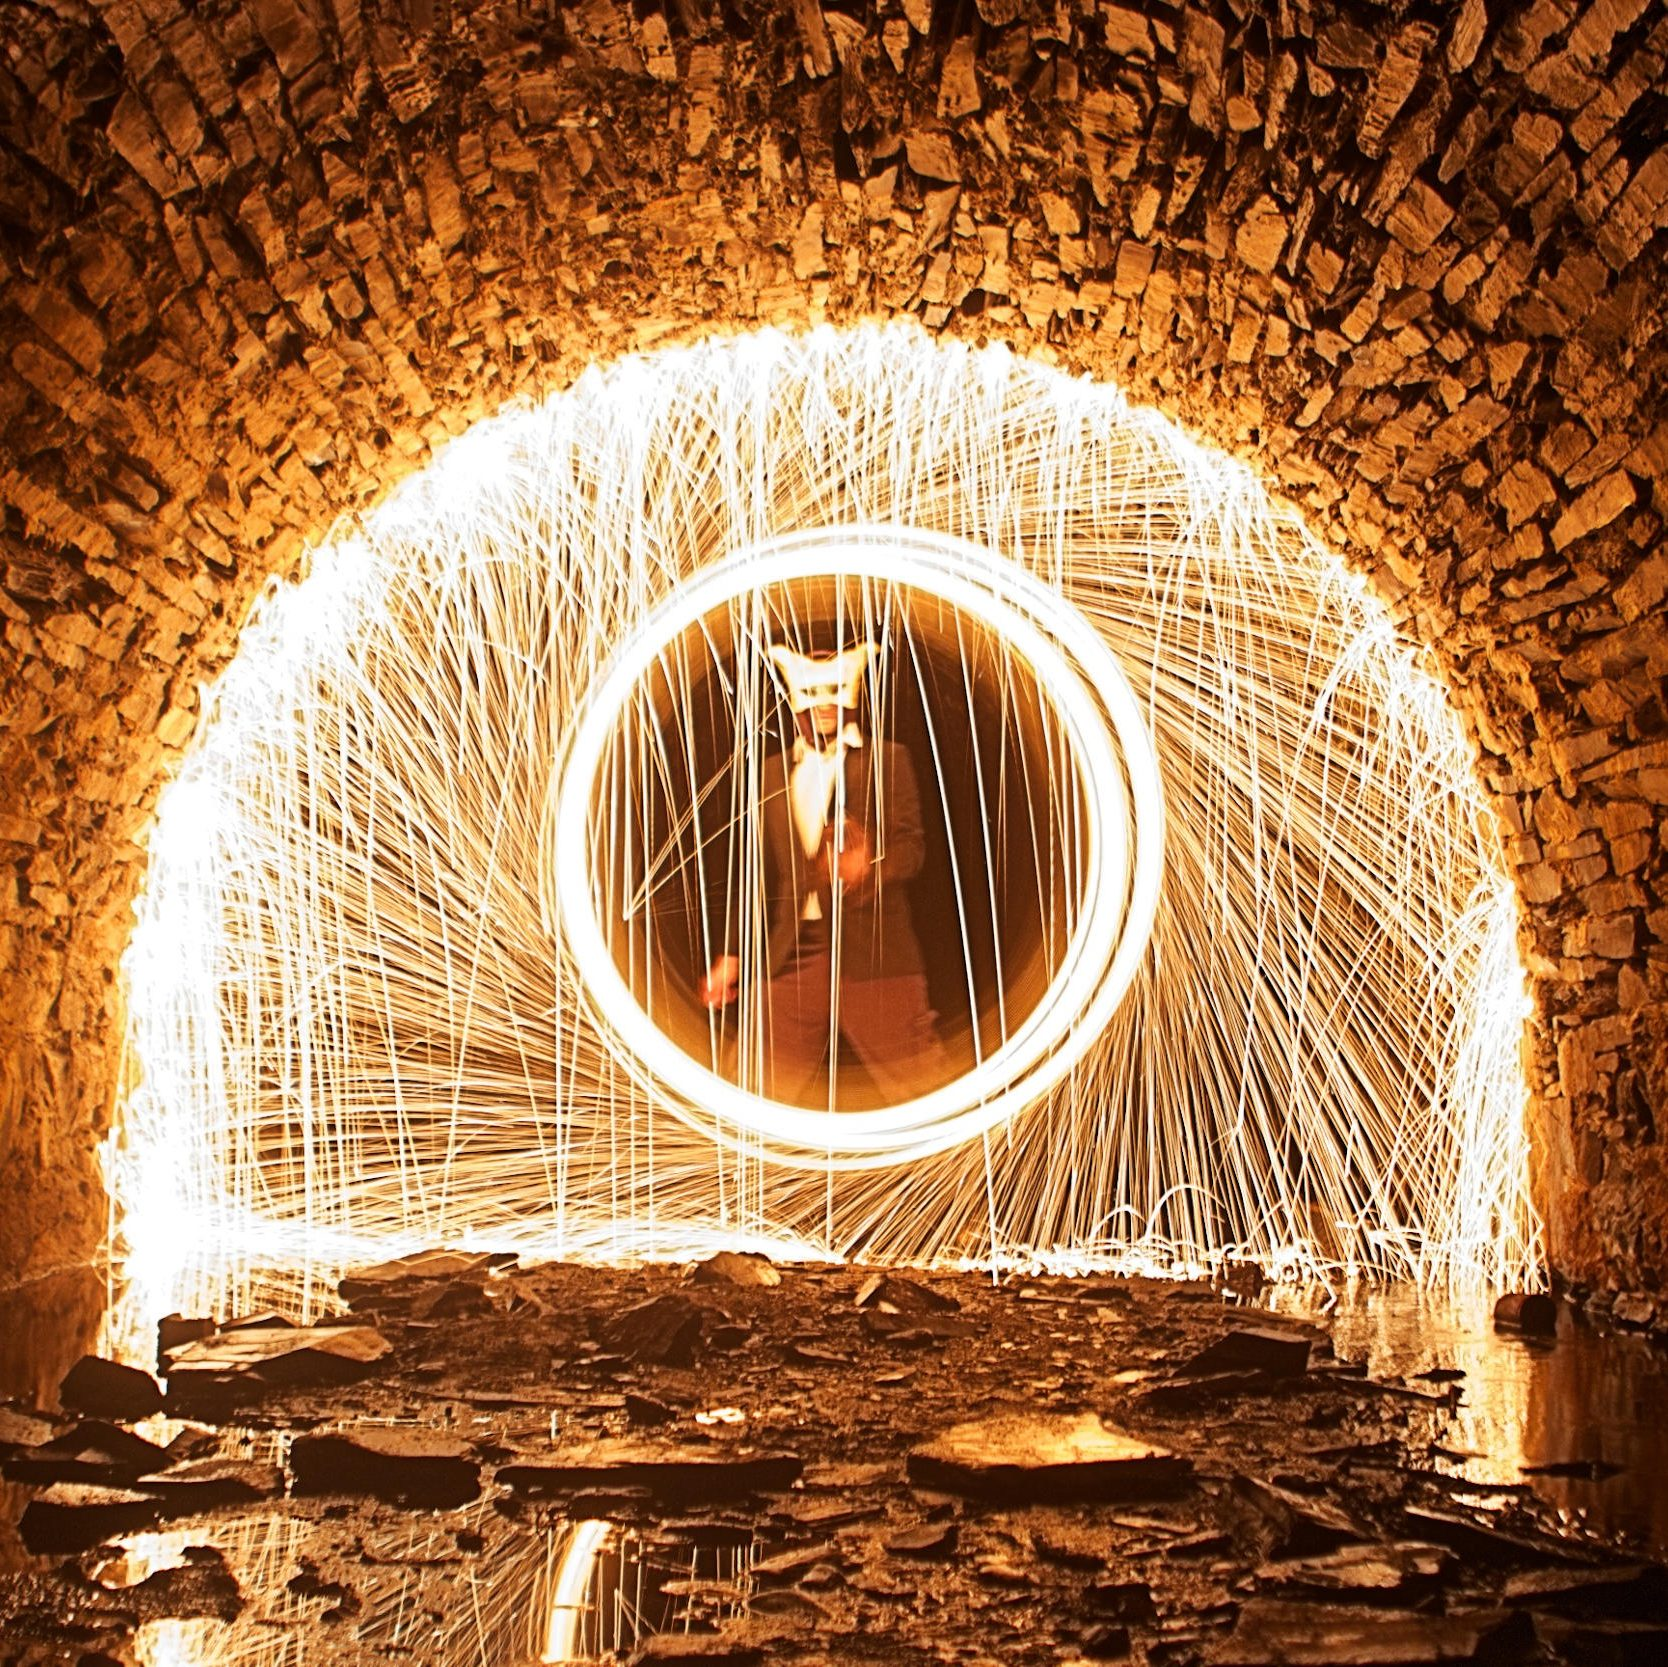 Iago fire show in tunnel